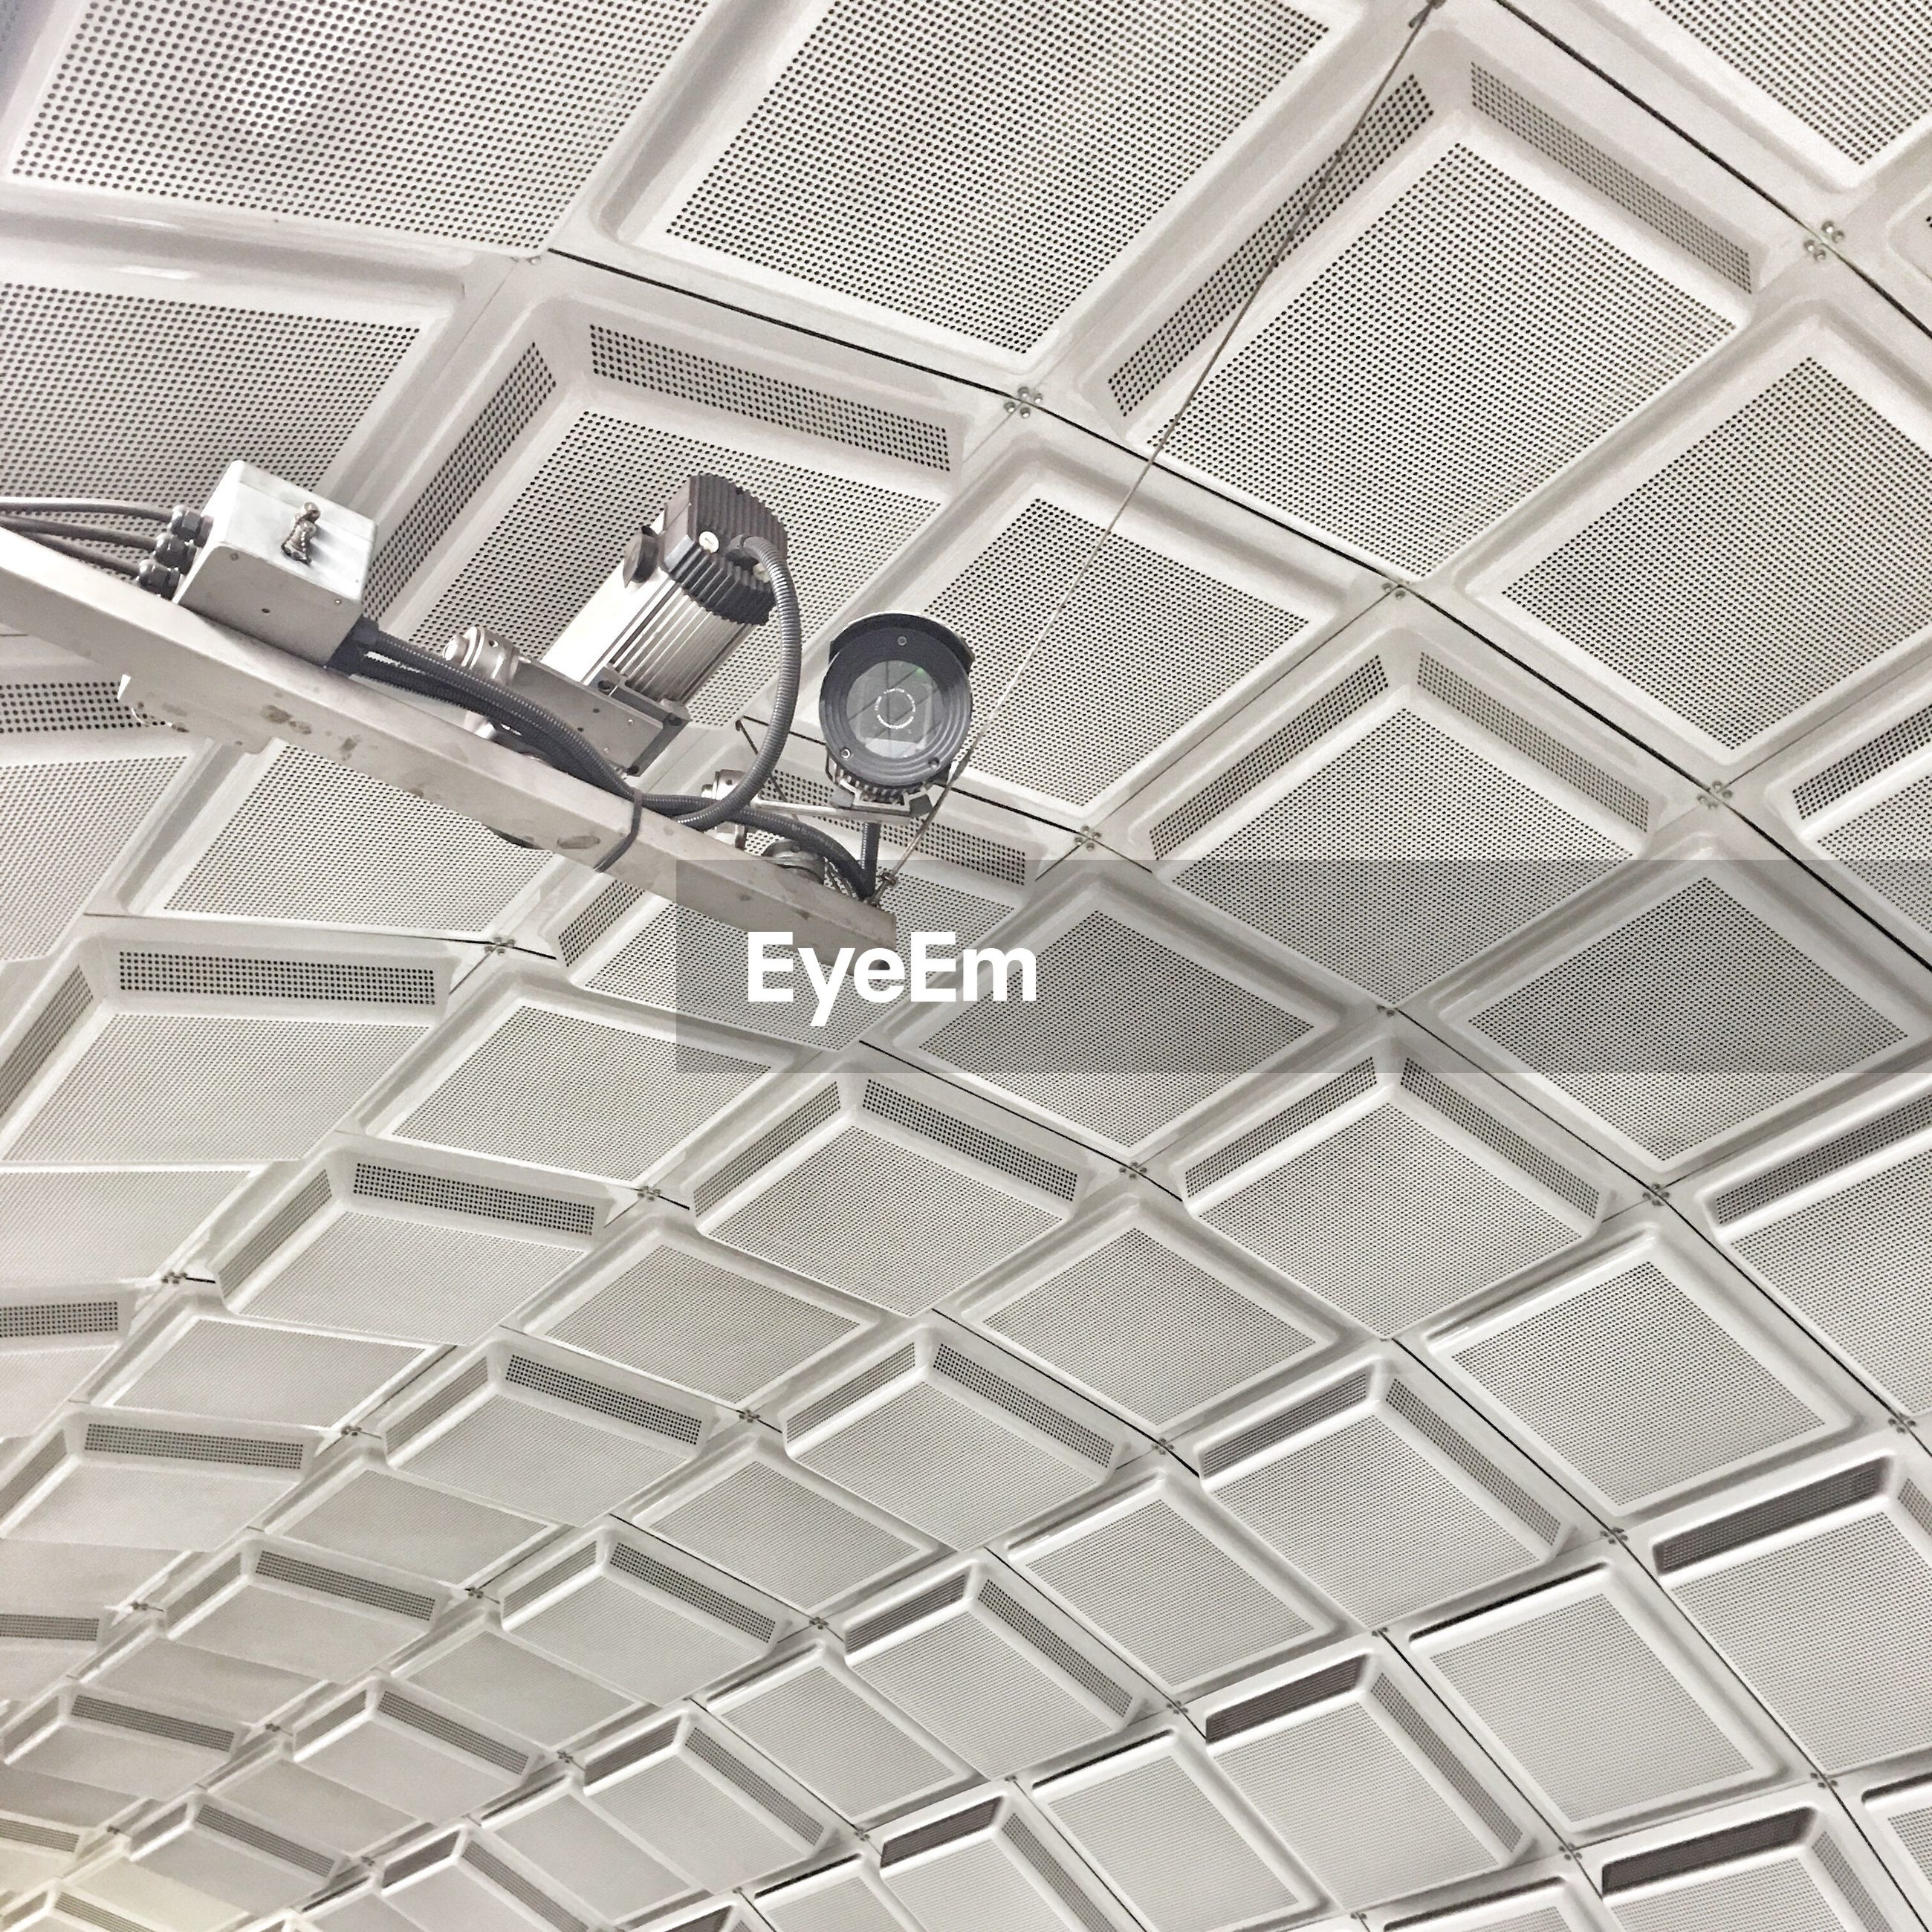 Low angle view of security cameras against ceiling